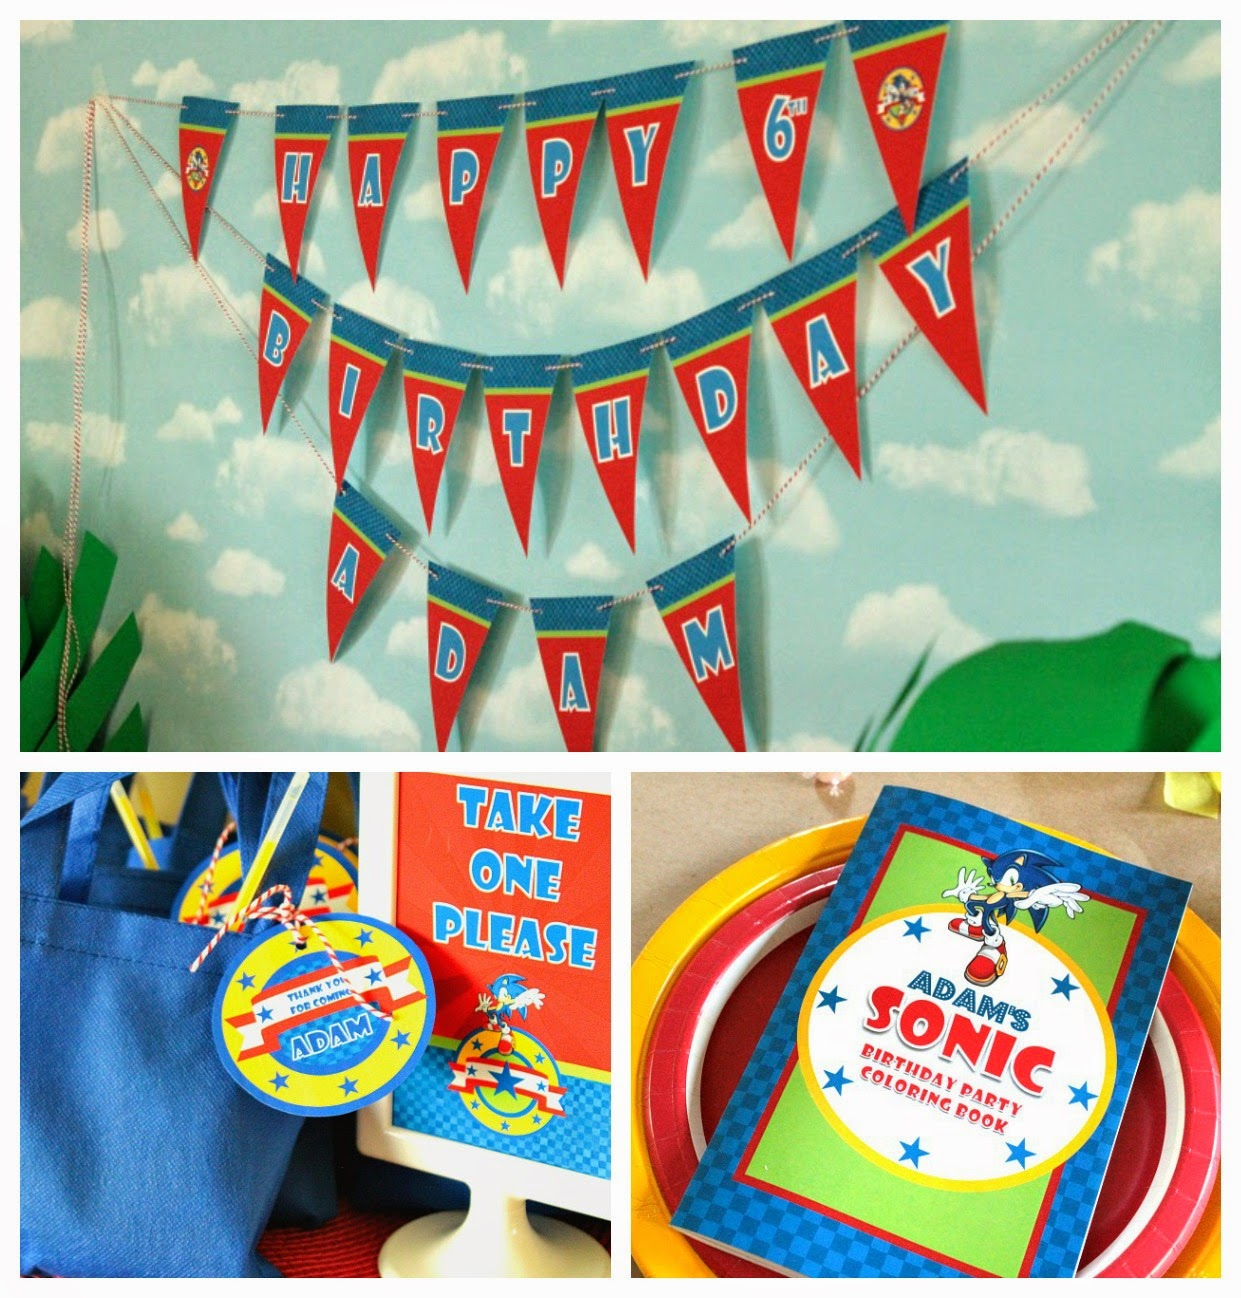 sonic the hedgehog party favors, sonic the hedgehog bag fillers, sonic the hedgehog party banner